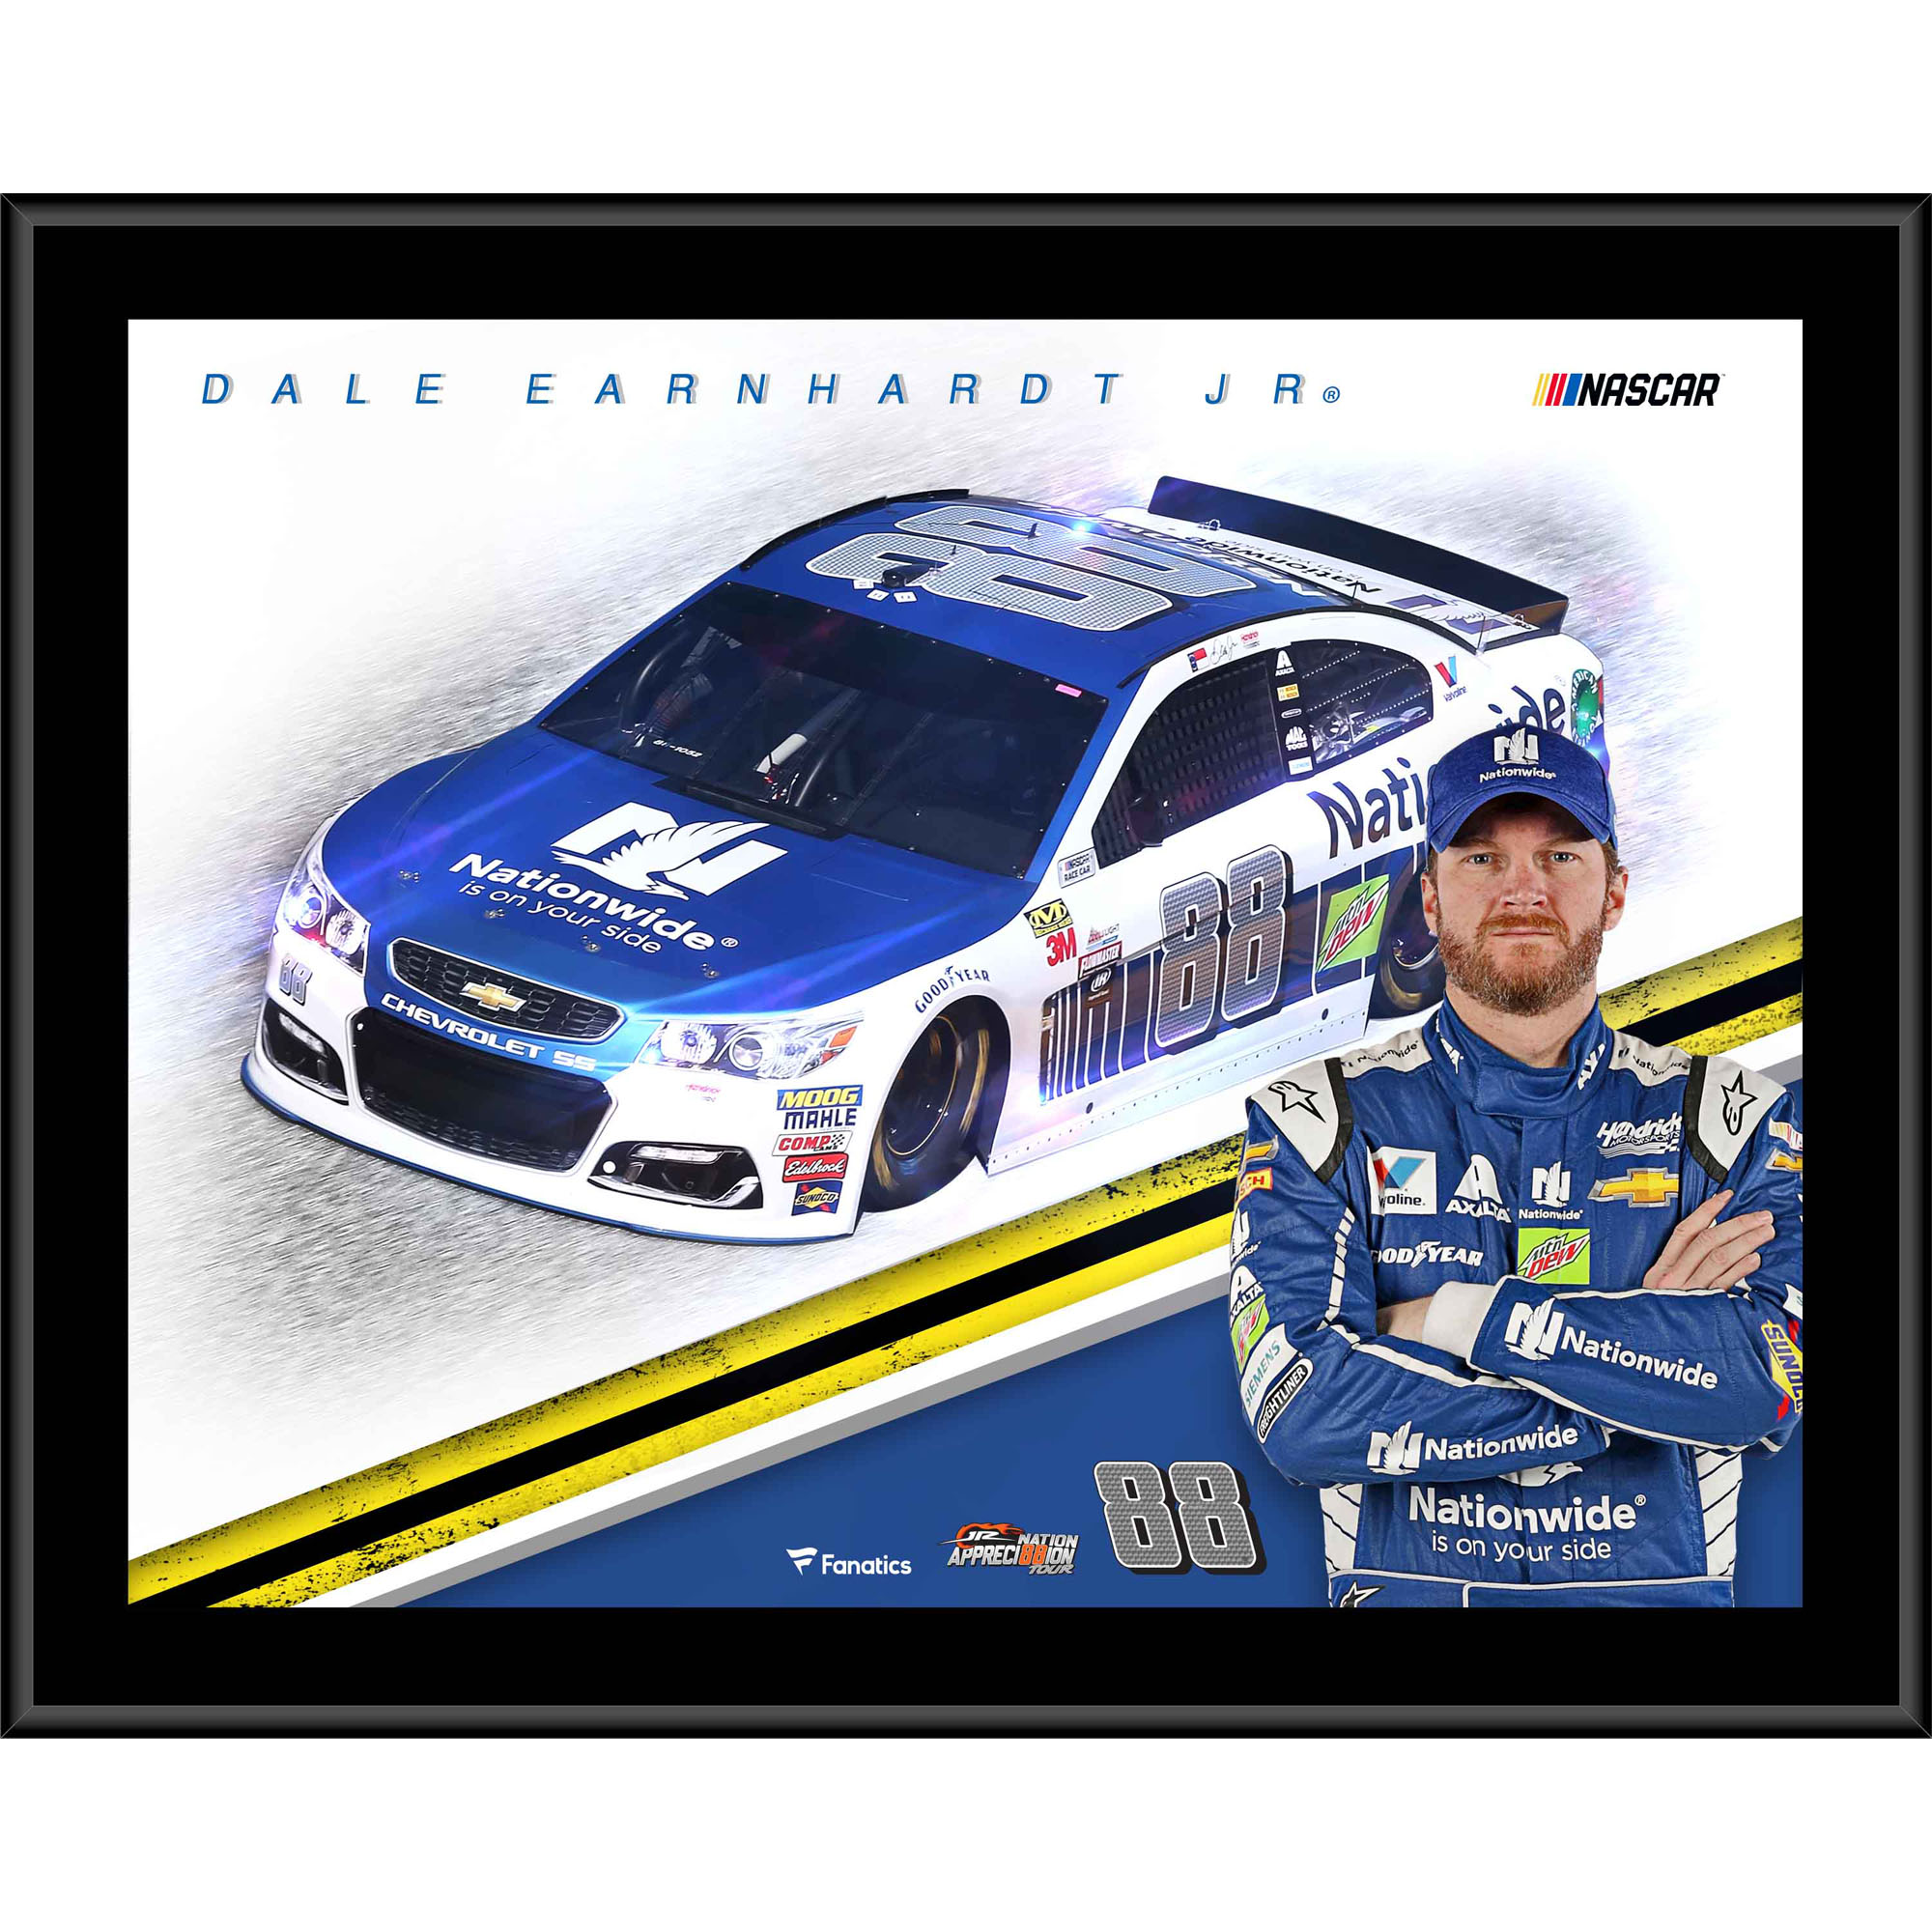 "Dale Earnhardt Jr. Fanatics Authentic 12"" x 15"" Nationwide Sublimated Plaque - No Size"